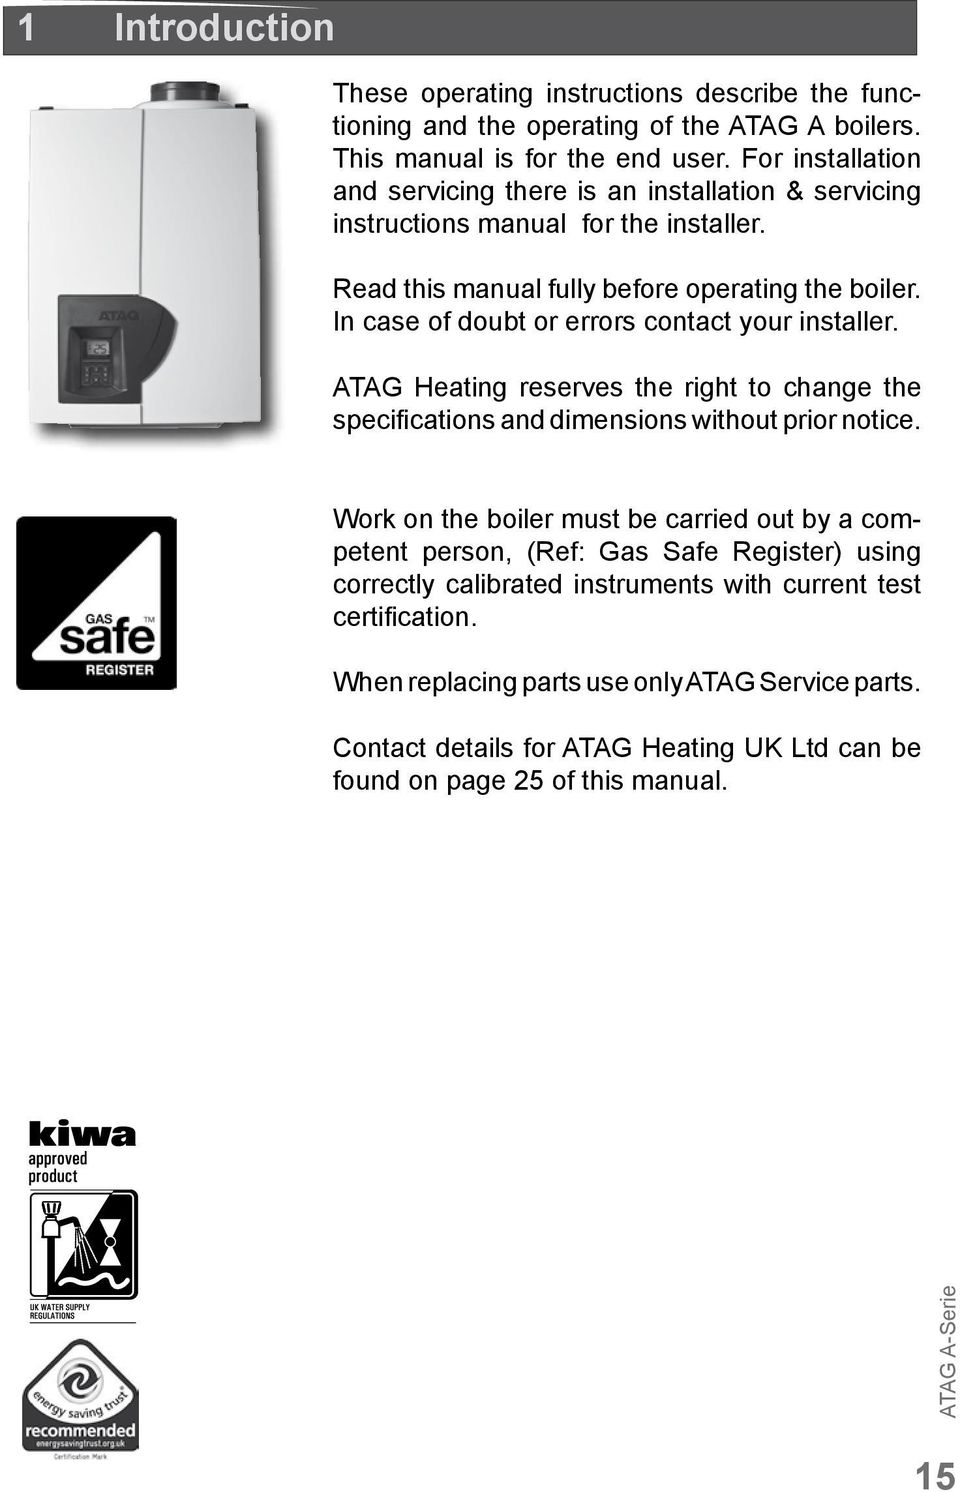 In case of doubt or errors contact your installer. ATAG Heating reserves the right to change the specifications and dimensions without prior notice.